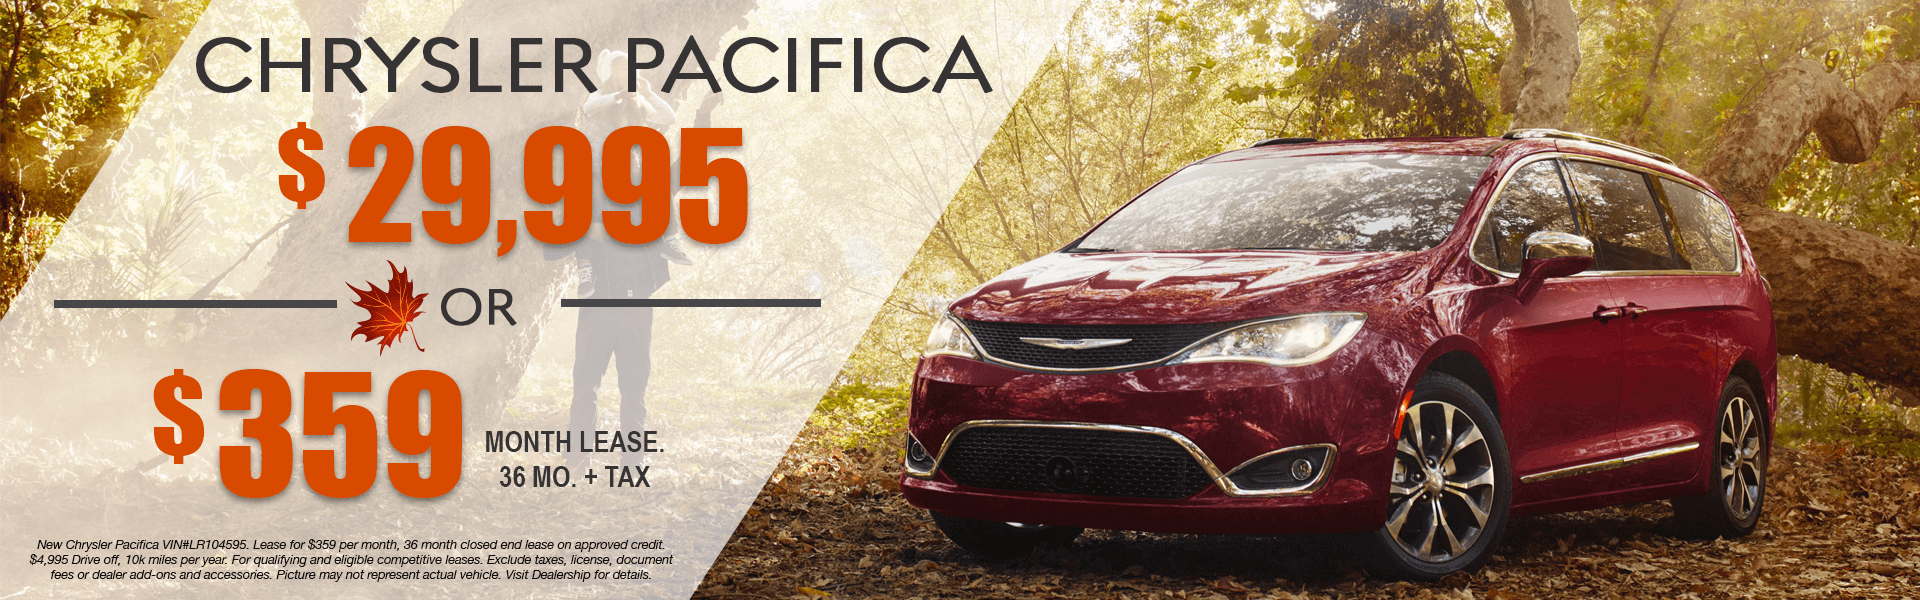 Chrysler Pacifica (Lease)-FALL